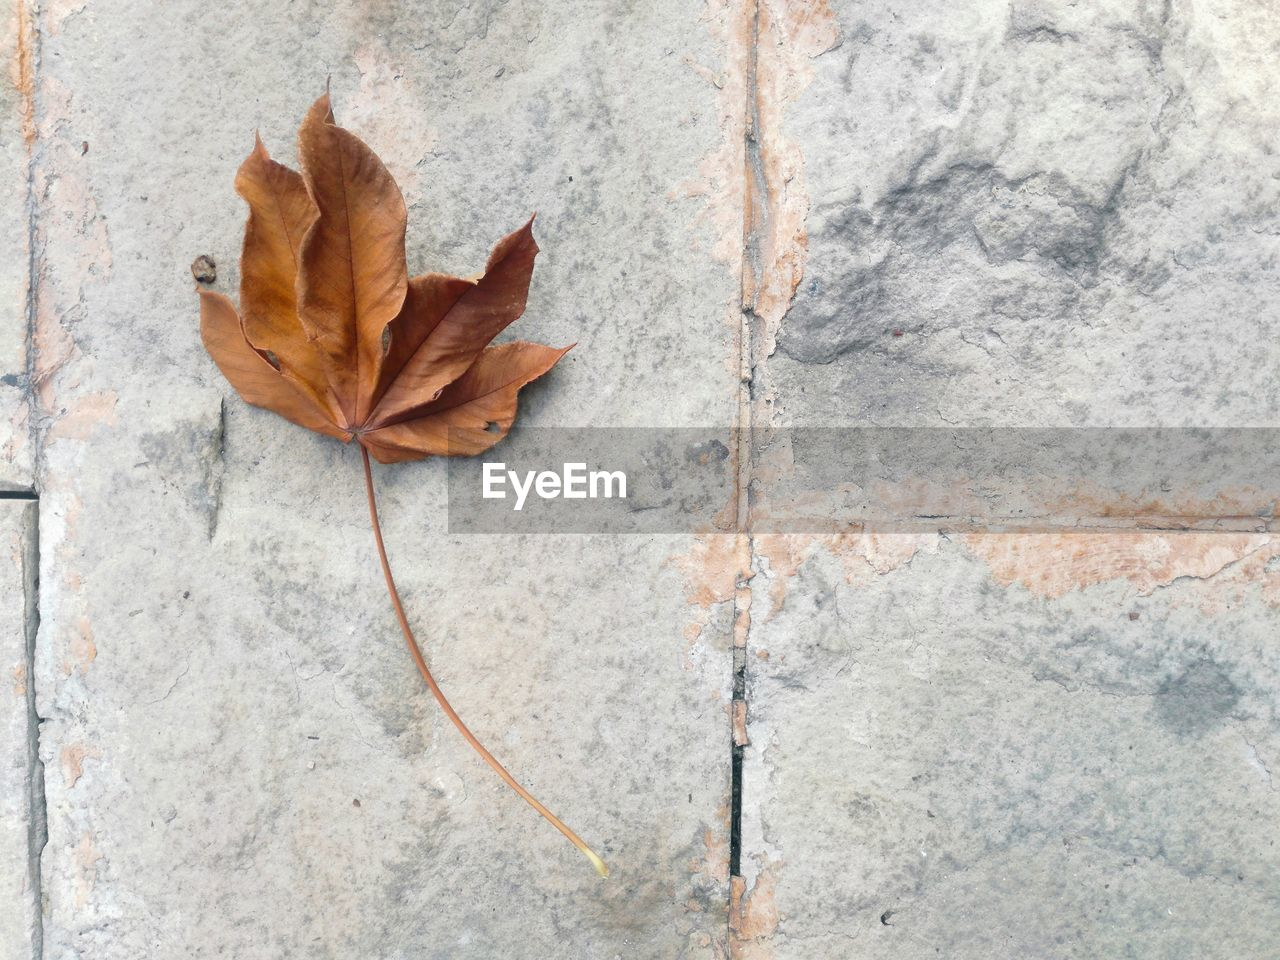 leaf, plant part, autumn, close-up, dry, no people, vulnerability, fragility, nature, change, directly above, textured, wall - building feature, outdoors, day, plant, natural pattern, leaf vein, brown, solid, concrete, maple leaf, natural condition, leaves